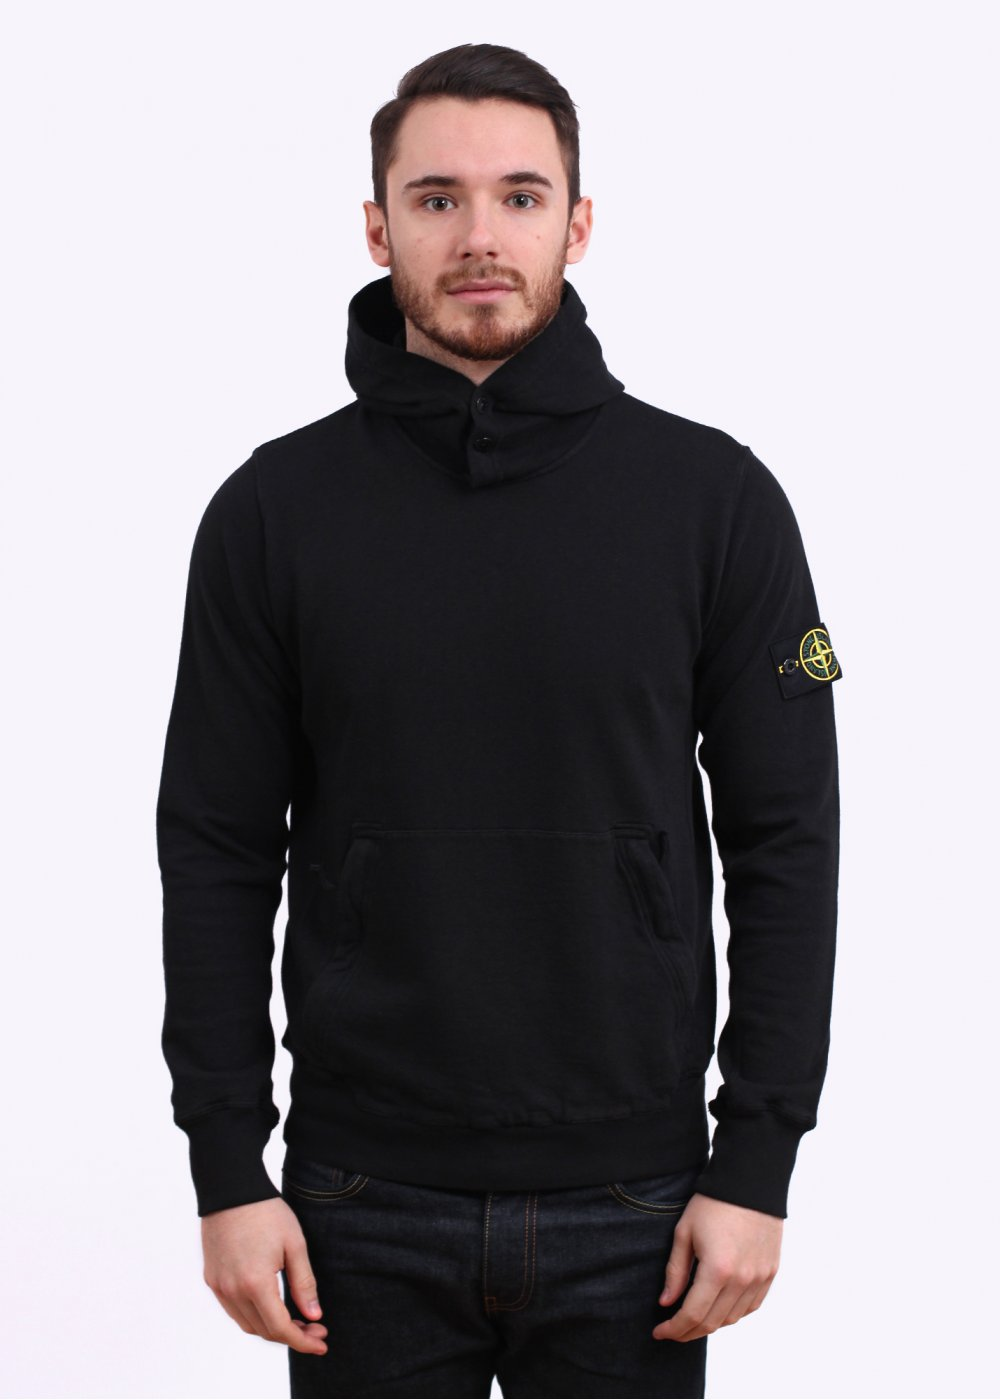 Stone Island Garment Dyed Vintage Hooded Sweater Black